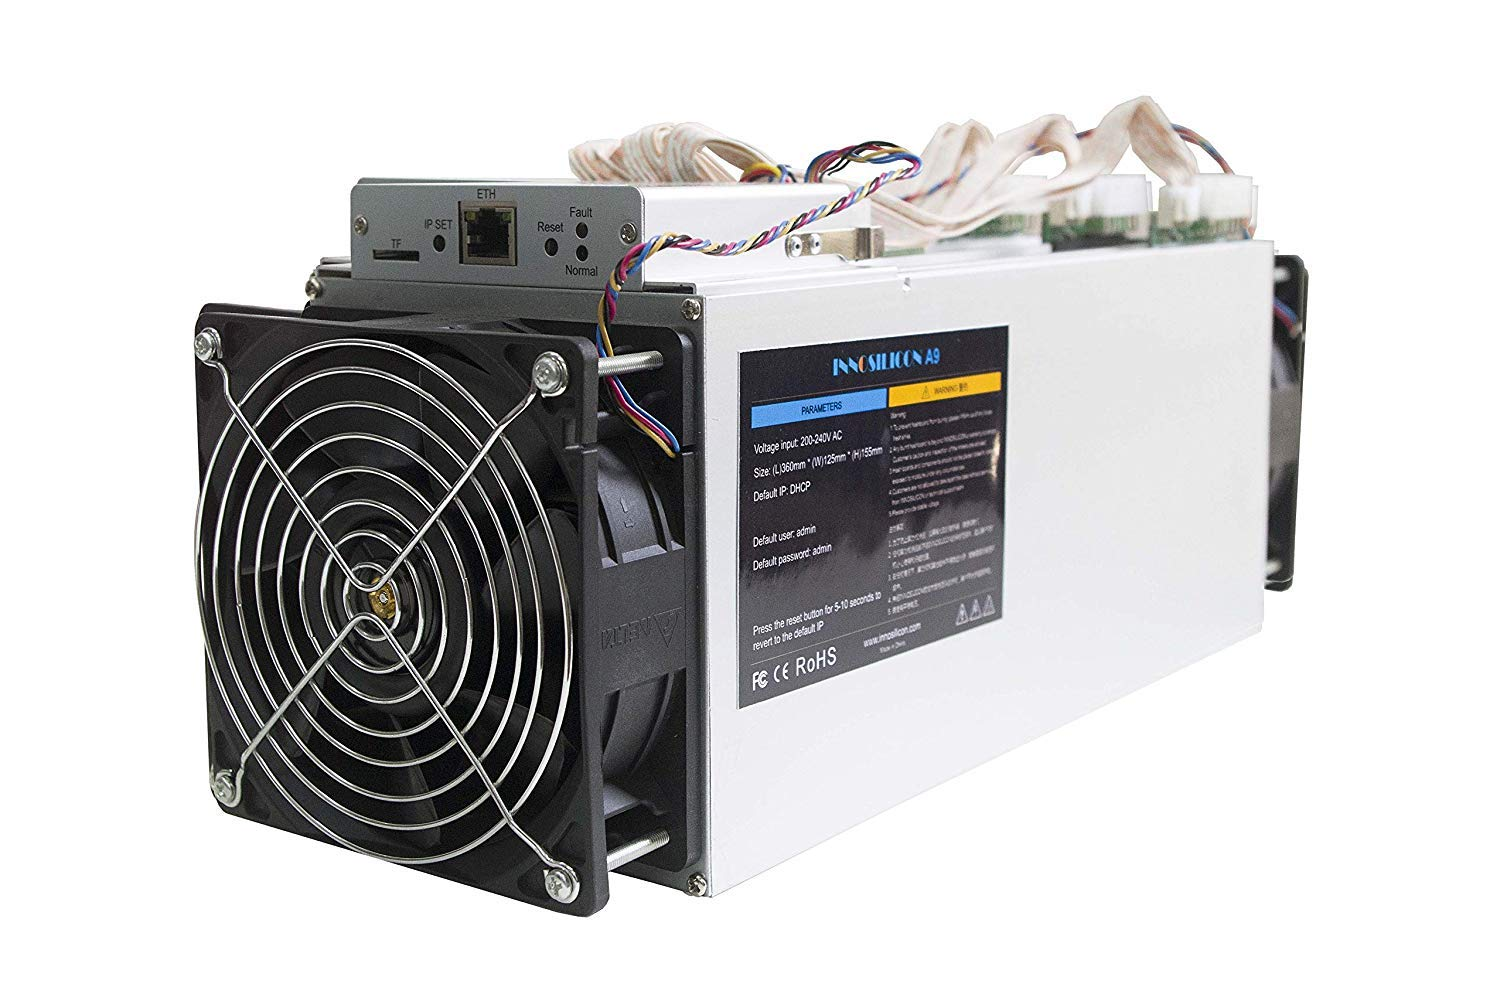 Innosilicon Equihash A9 ZMaster, 50Ksol/s 620W Powerful Equihash Miner with PSU with Low Consumption- A Few Times Better Hash Rate & Efficency Than Any Competition ZJW